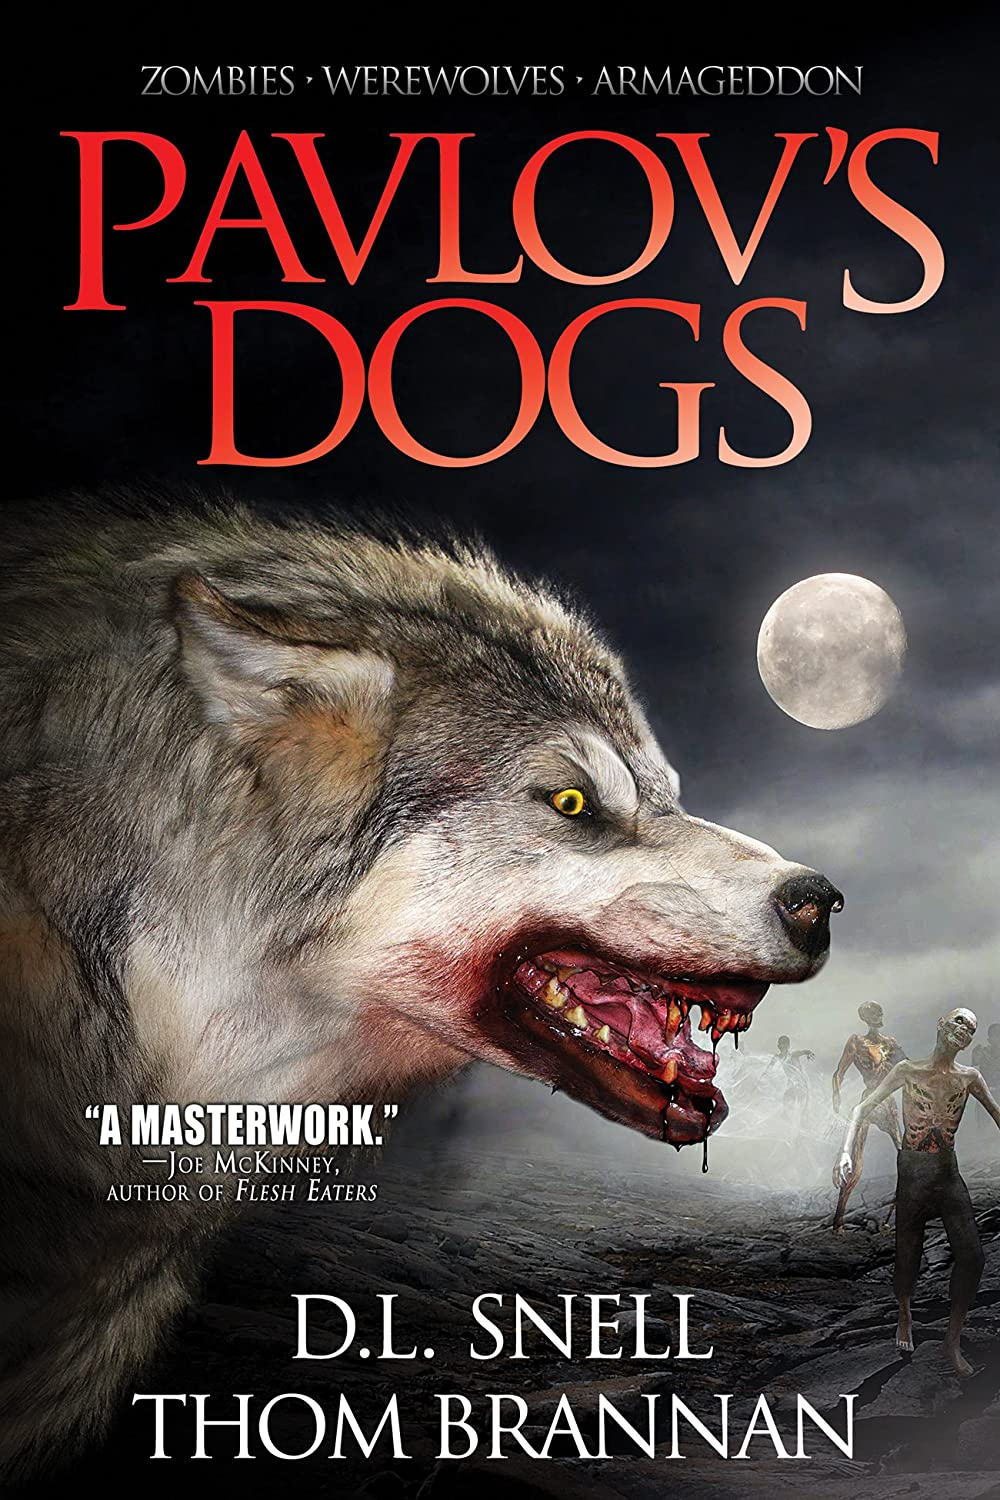 http://www.amazon.com/Pavlovs-Dogs-ebook/dp/B007SISYKA/juleromans-20